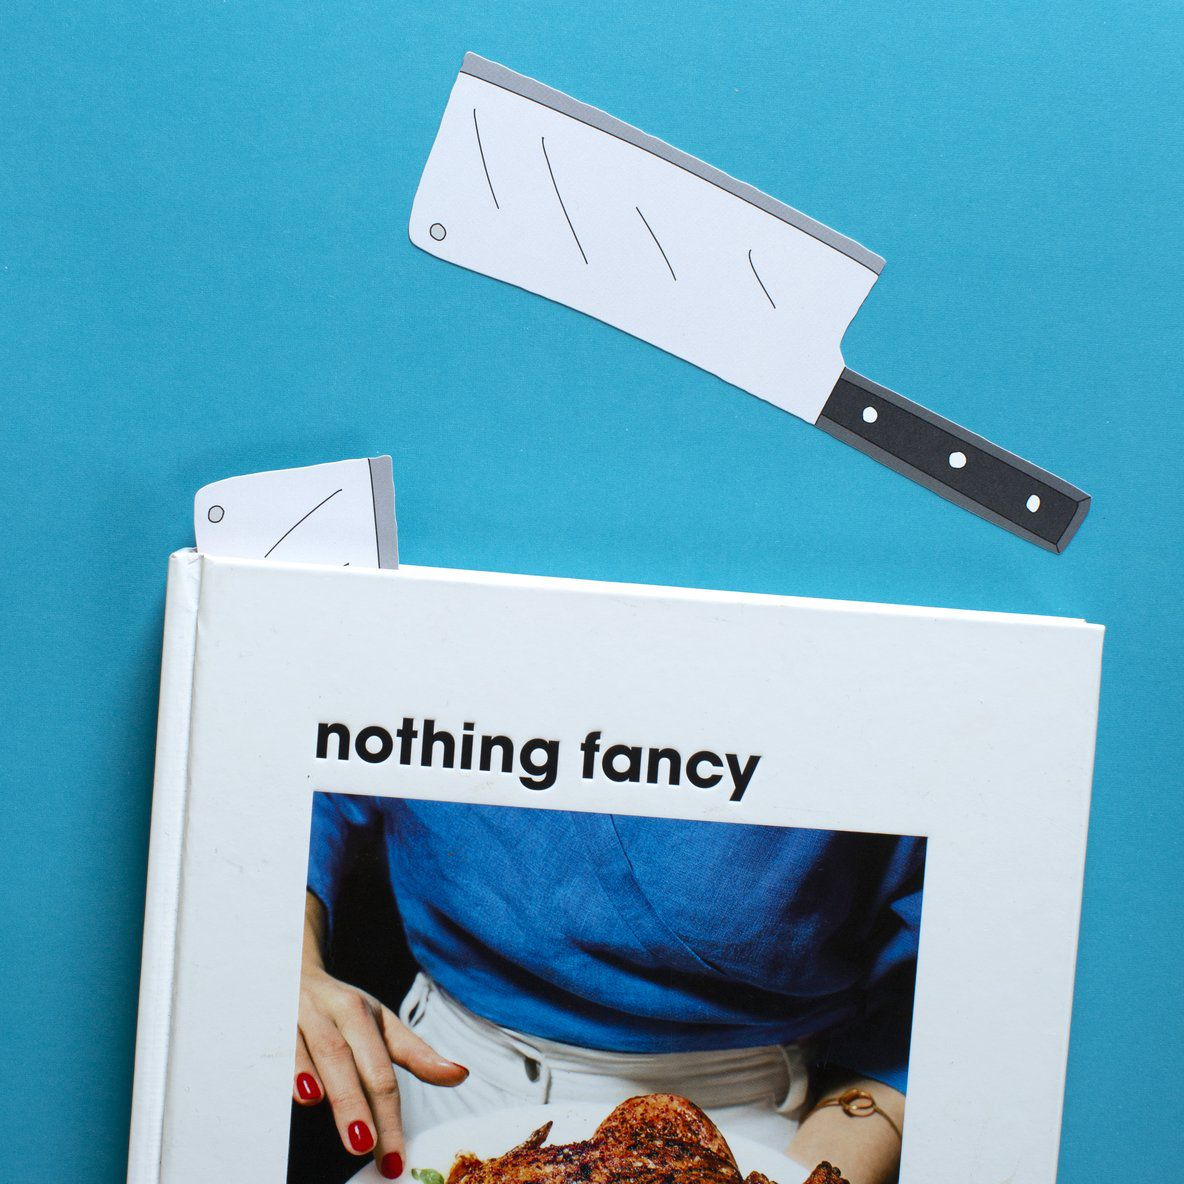 A bookmark in the shape of a cleaver against a blue background, next to a cookbook